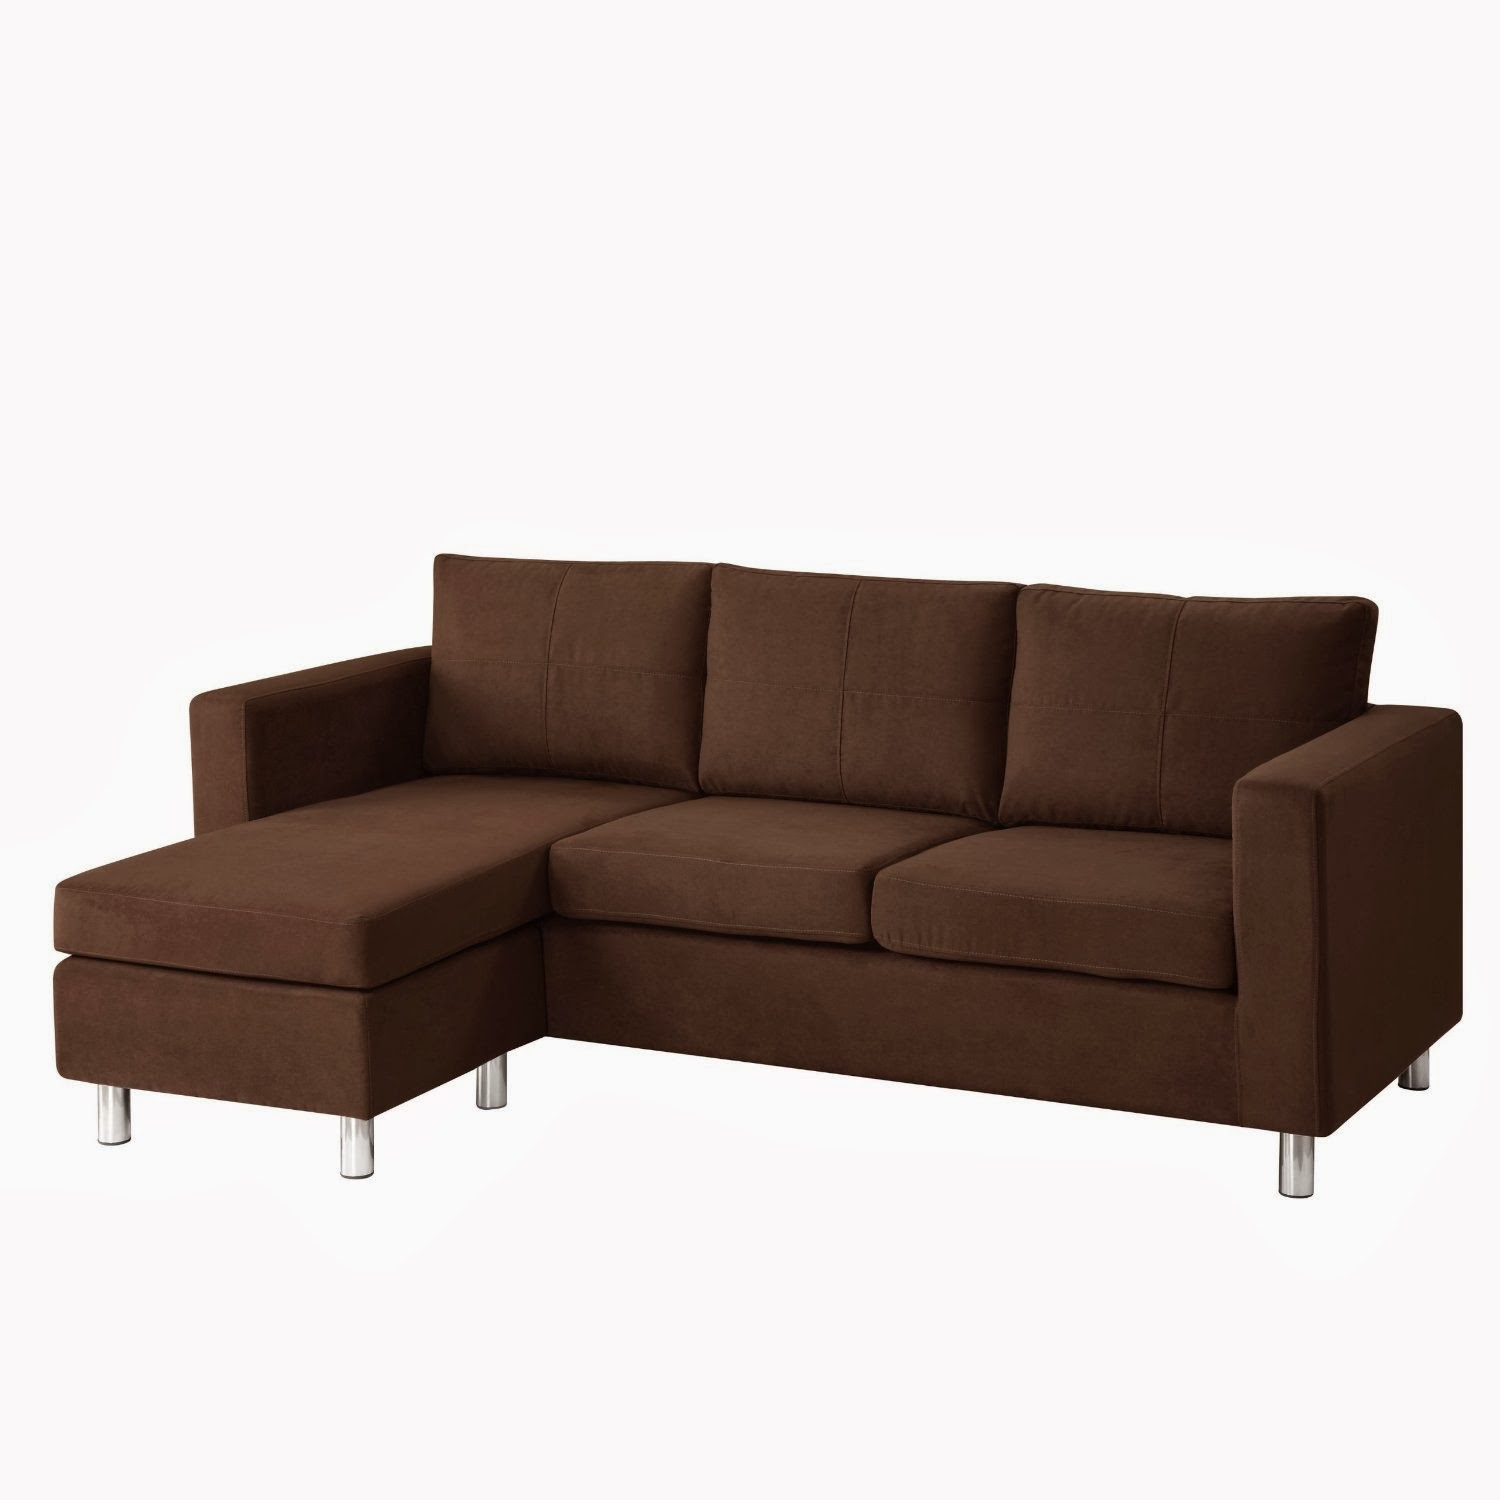 Sleeper Sectional Of Small Sectional Sofas Reviews Small Sectional Sleeper Sofa